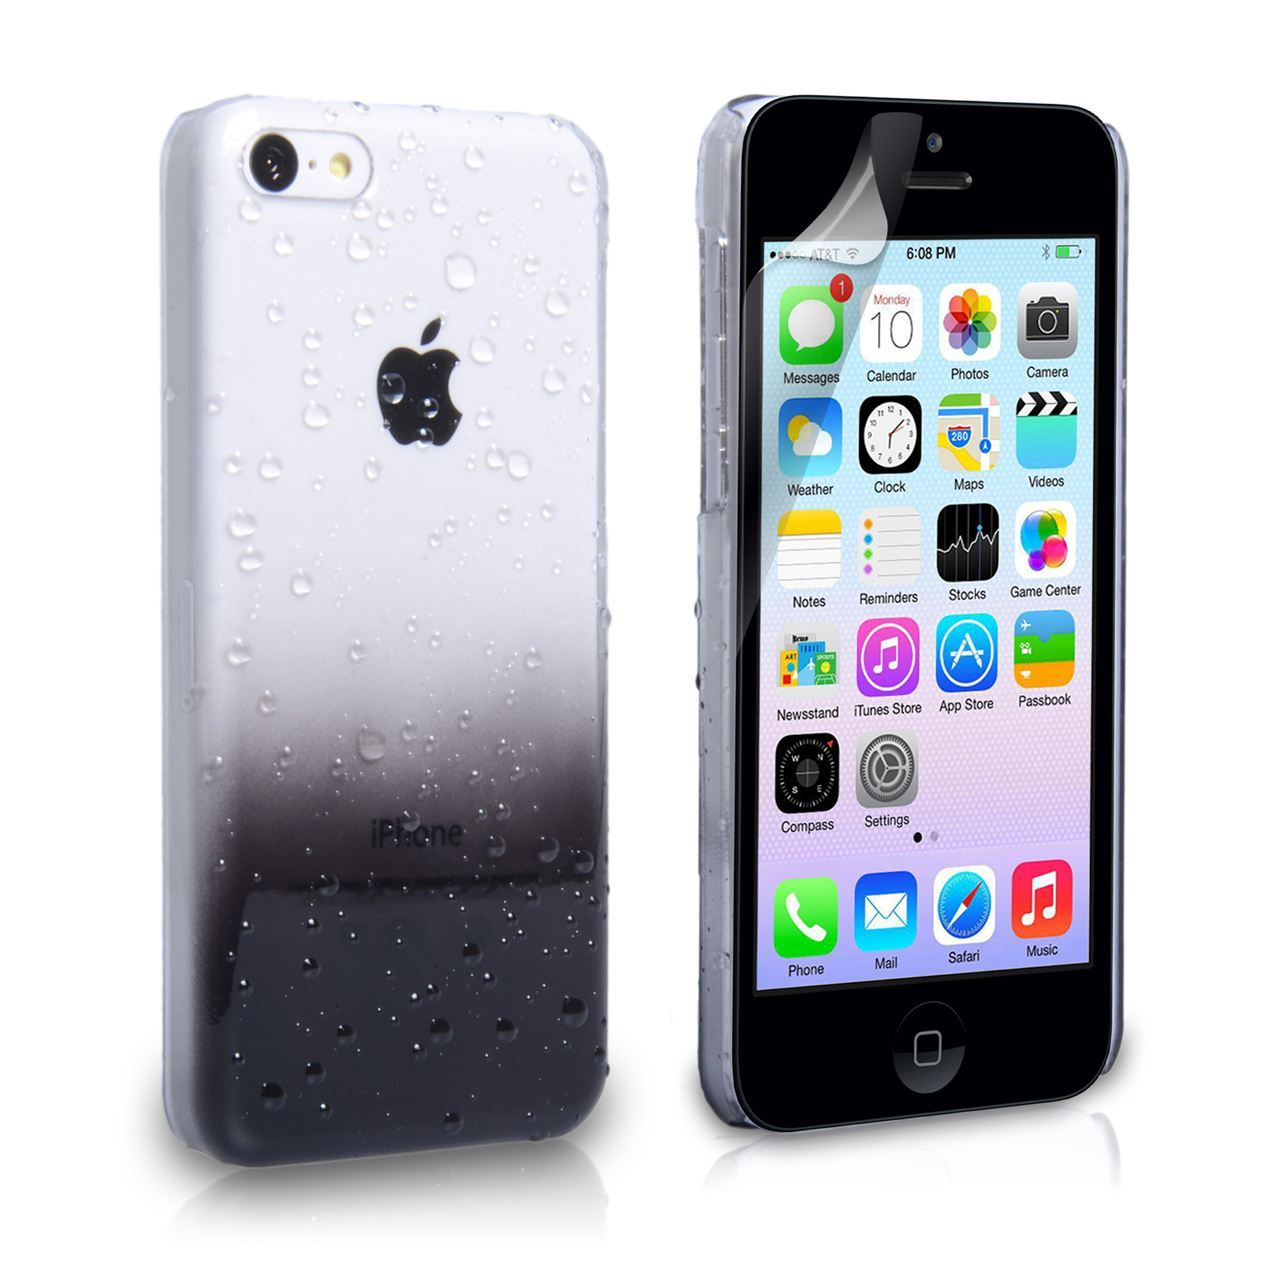 sports shoes 3c700 37e06 YouSave iPhone 5C Raindrop Hard Case - Black | Mobile M